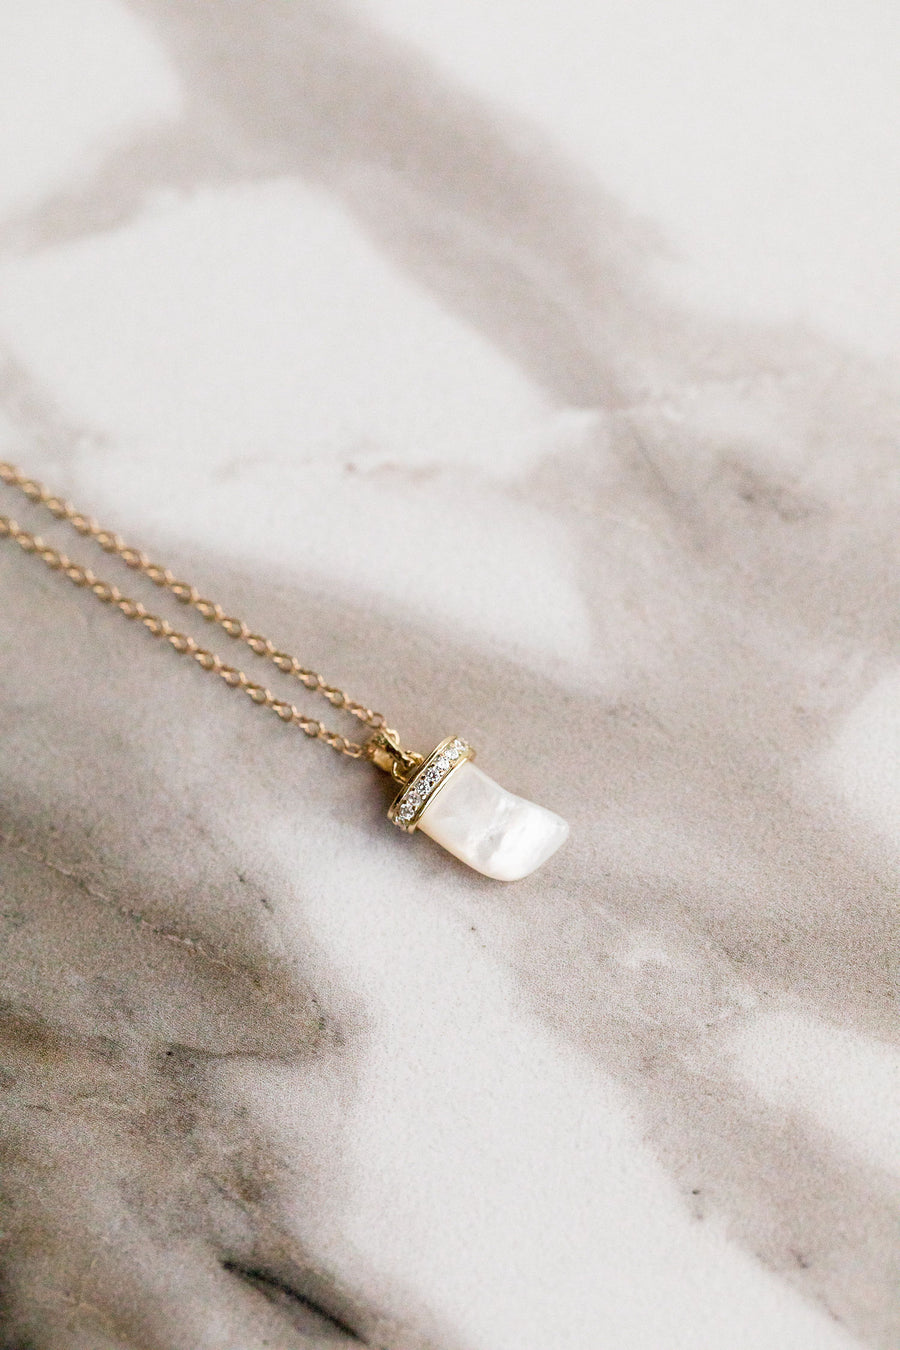 Find the perfect necklace you're looking for from Charme Silkiner! This beautiful 14K Gold Chain Necklace with Mother of Pearl Horn and CZ Accents is pure perfection. Great for layering or wearing alone the Haze Necklace is the perfect piece of unique jewelry that everyone should own.